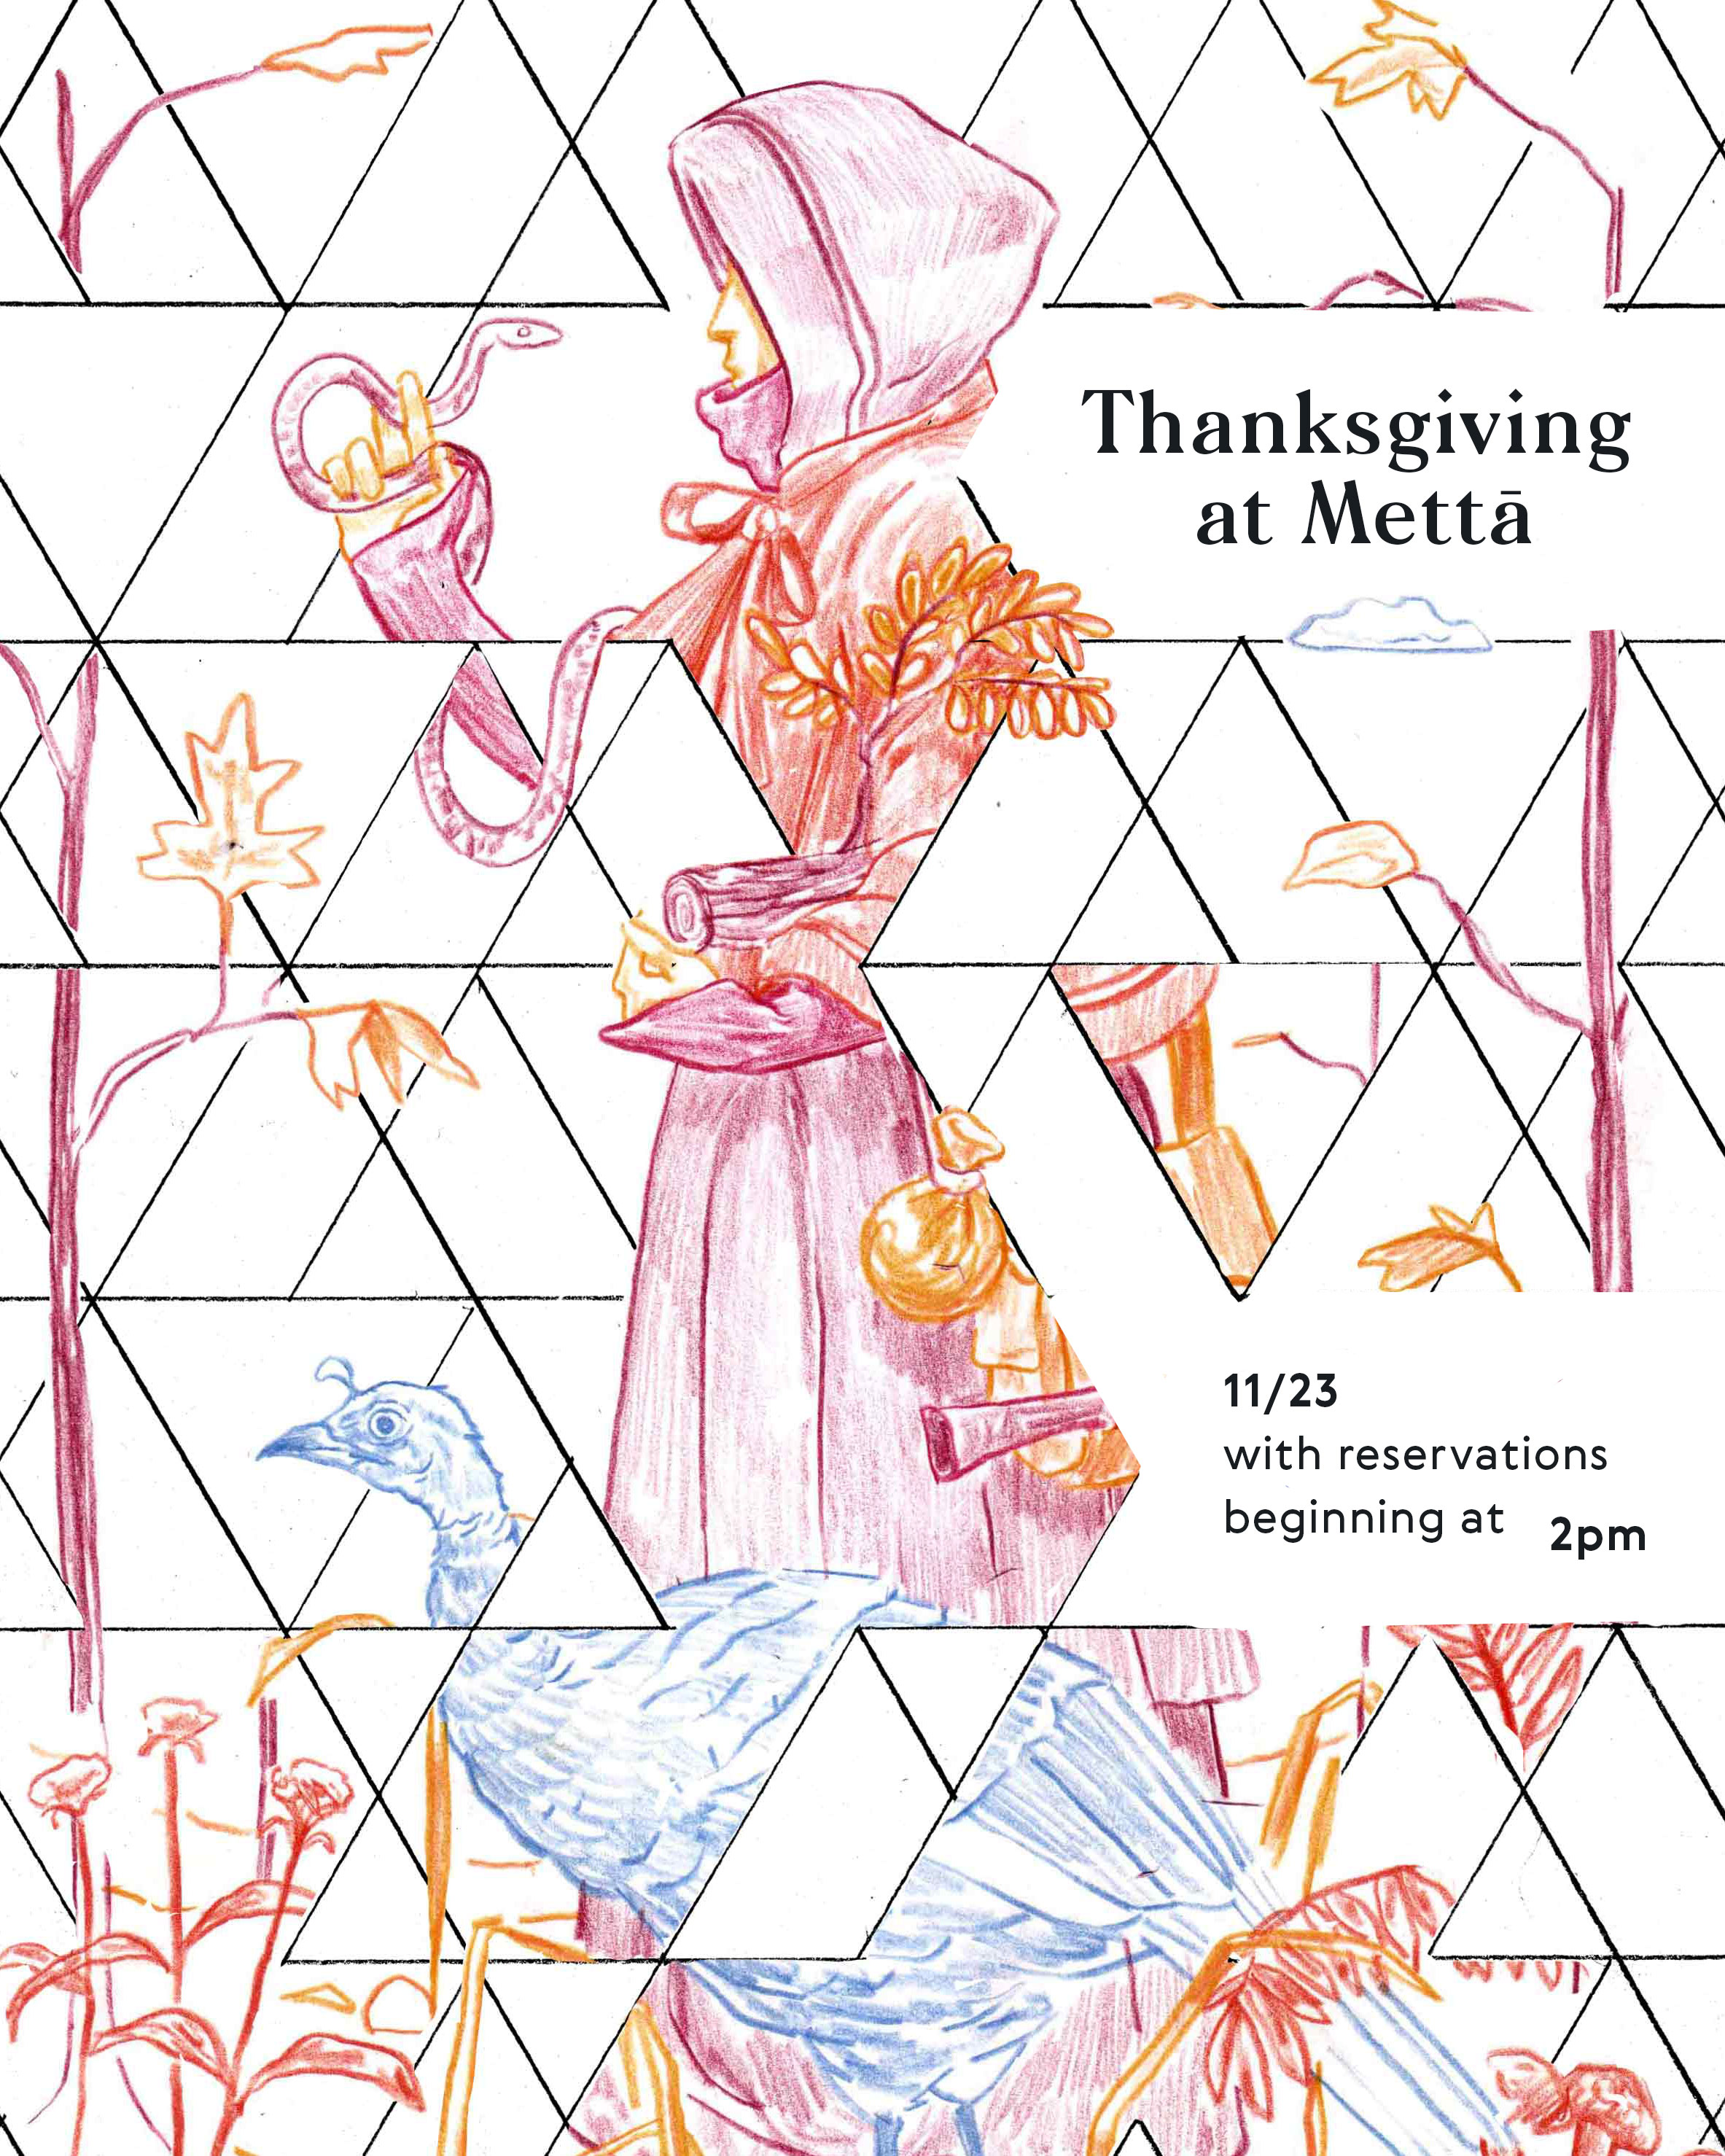 metta_thanksgiving_flyer_v2(IG).jpg